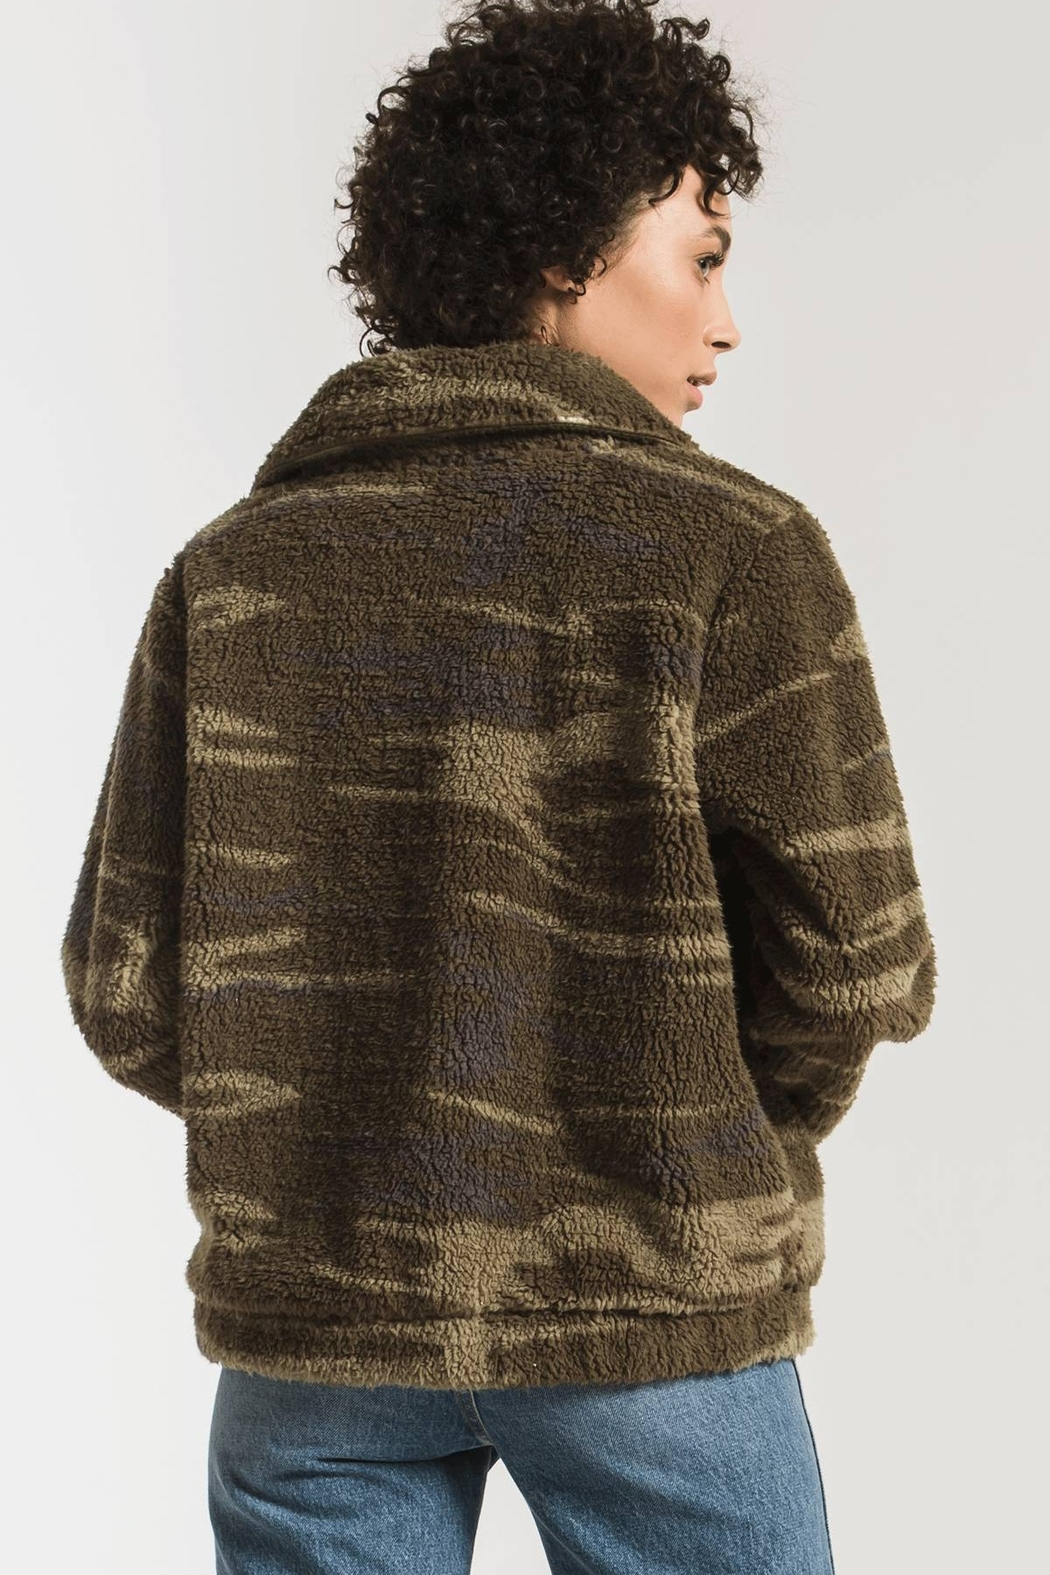 z supply The Camo Sherpa Crop Jacket - Back Cropped Image